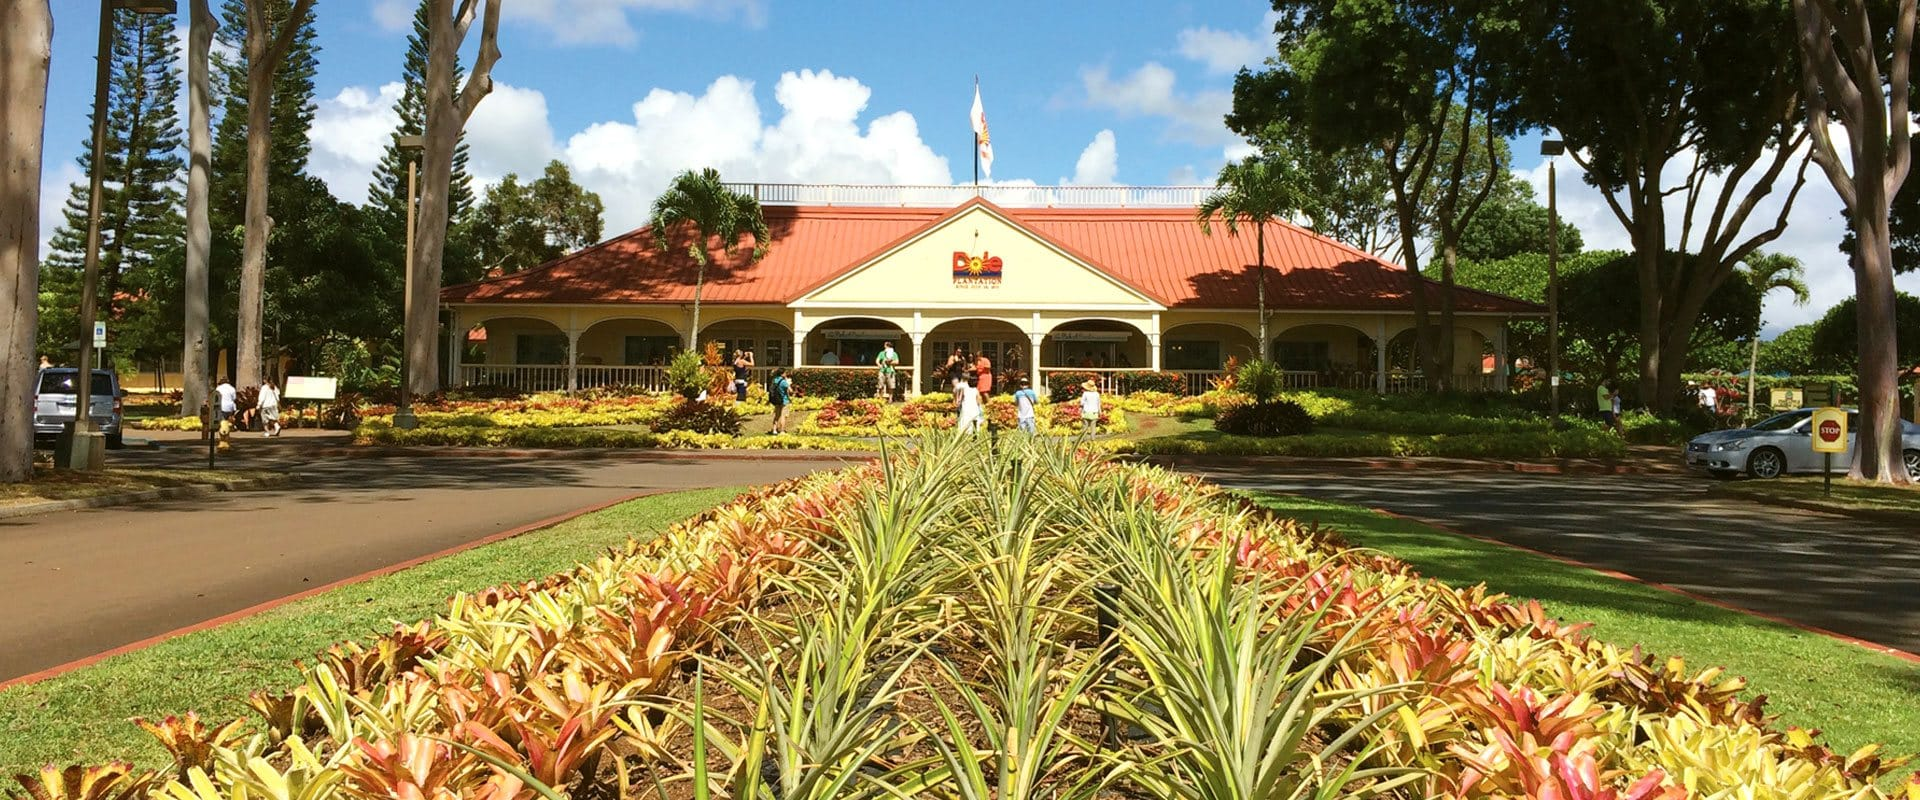 Dole Plantation Hawaii's Pineapple Experience